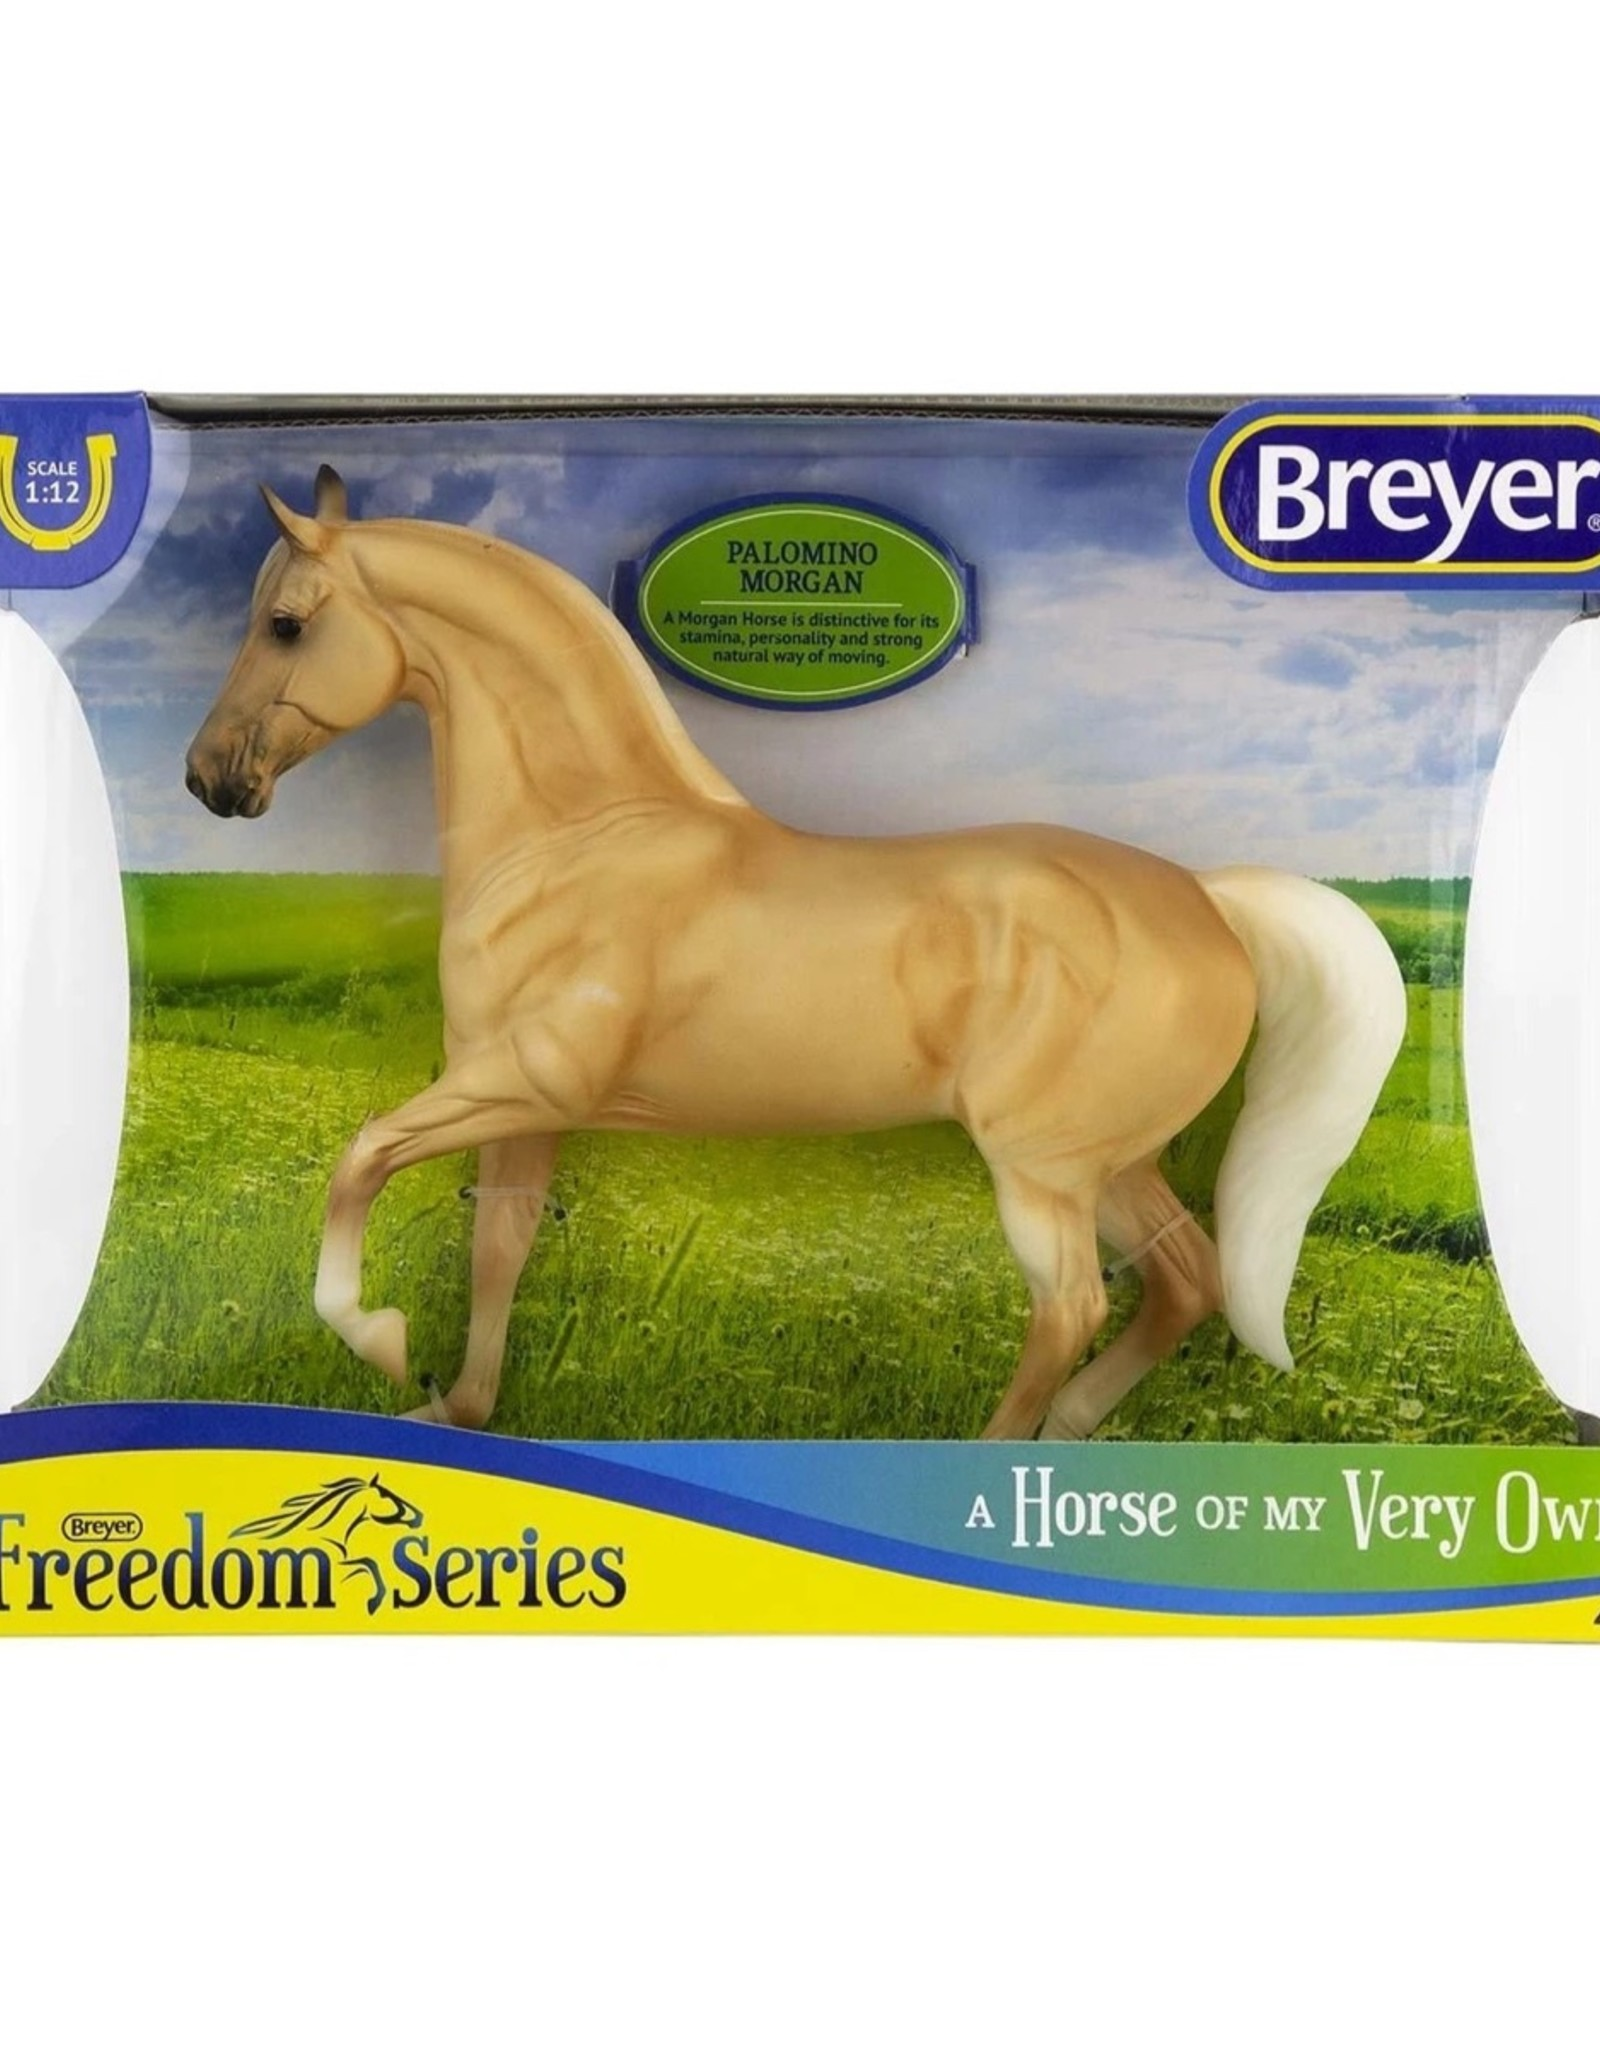 Breyer Palomino Morgan